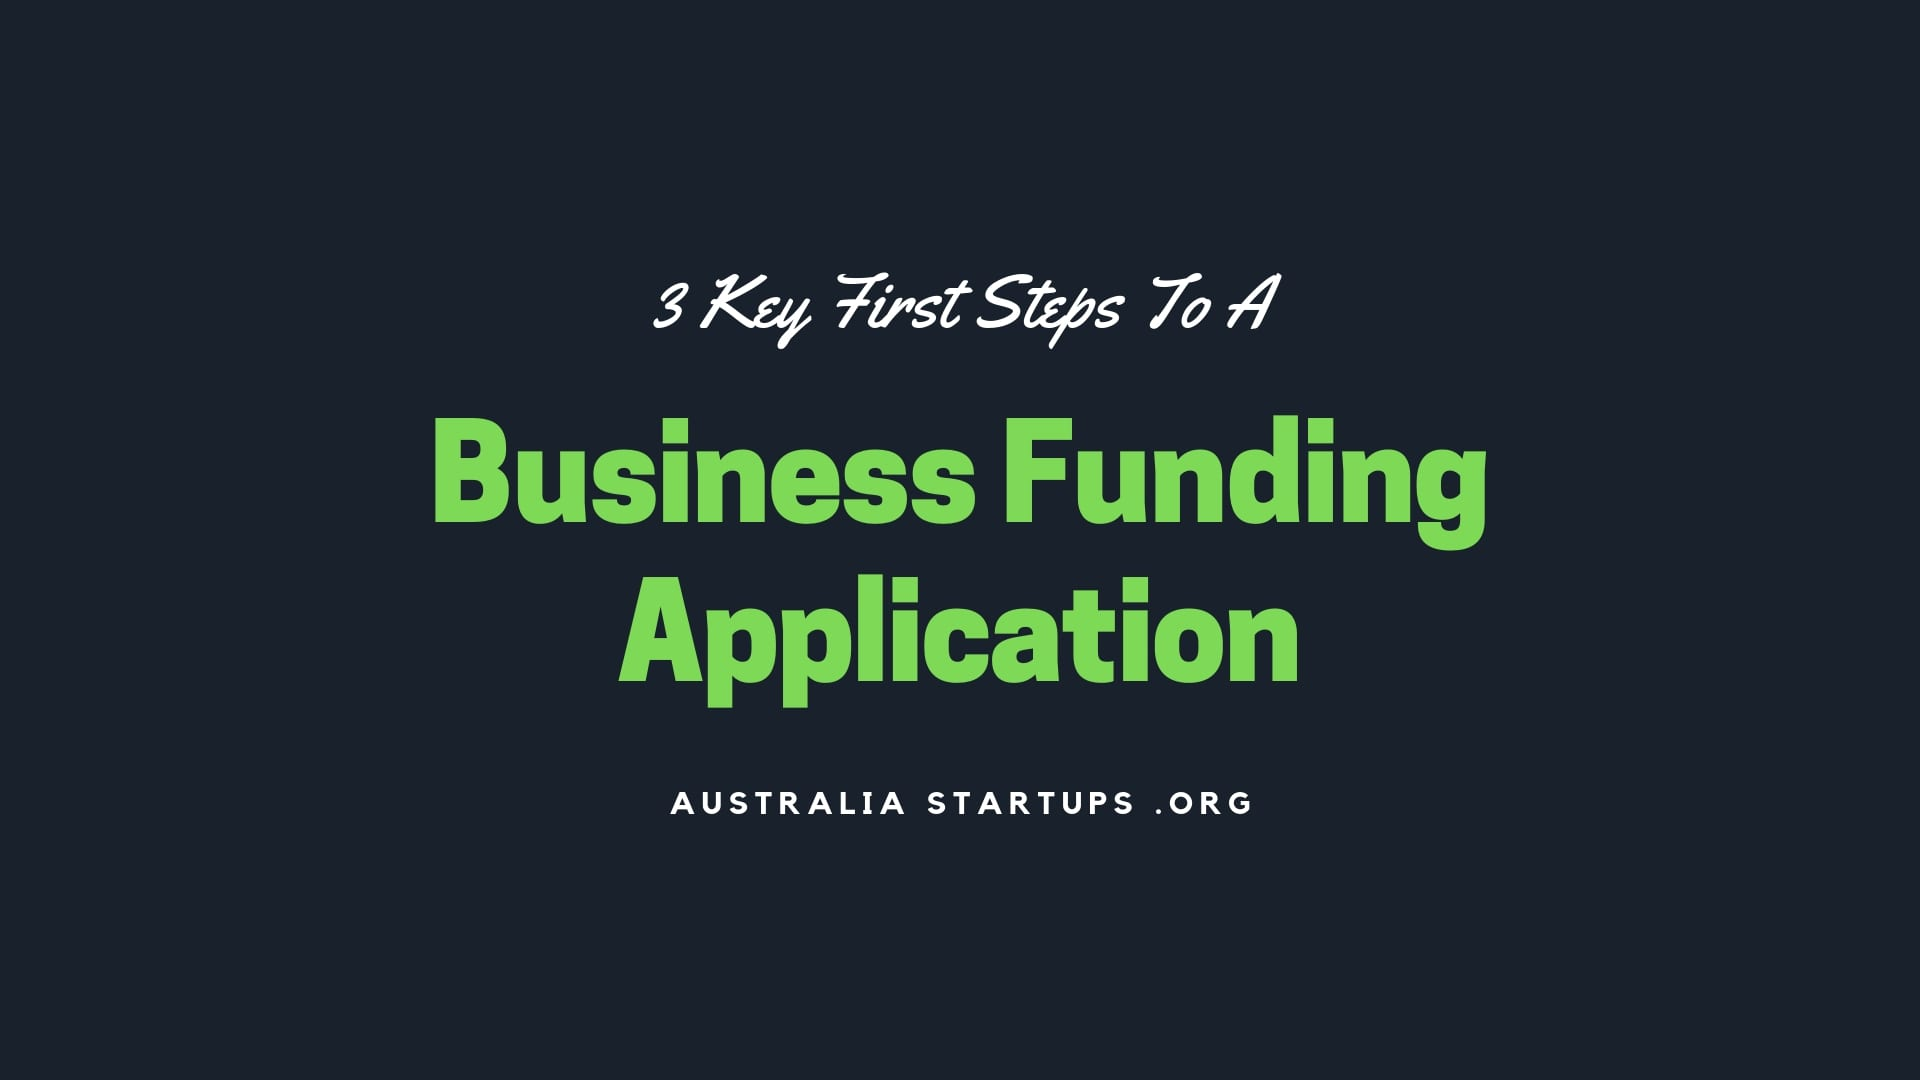 Business Funding Application